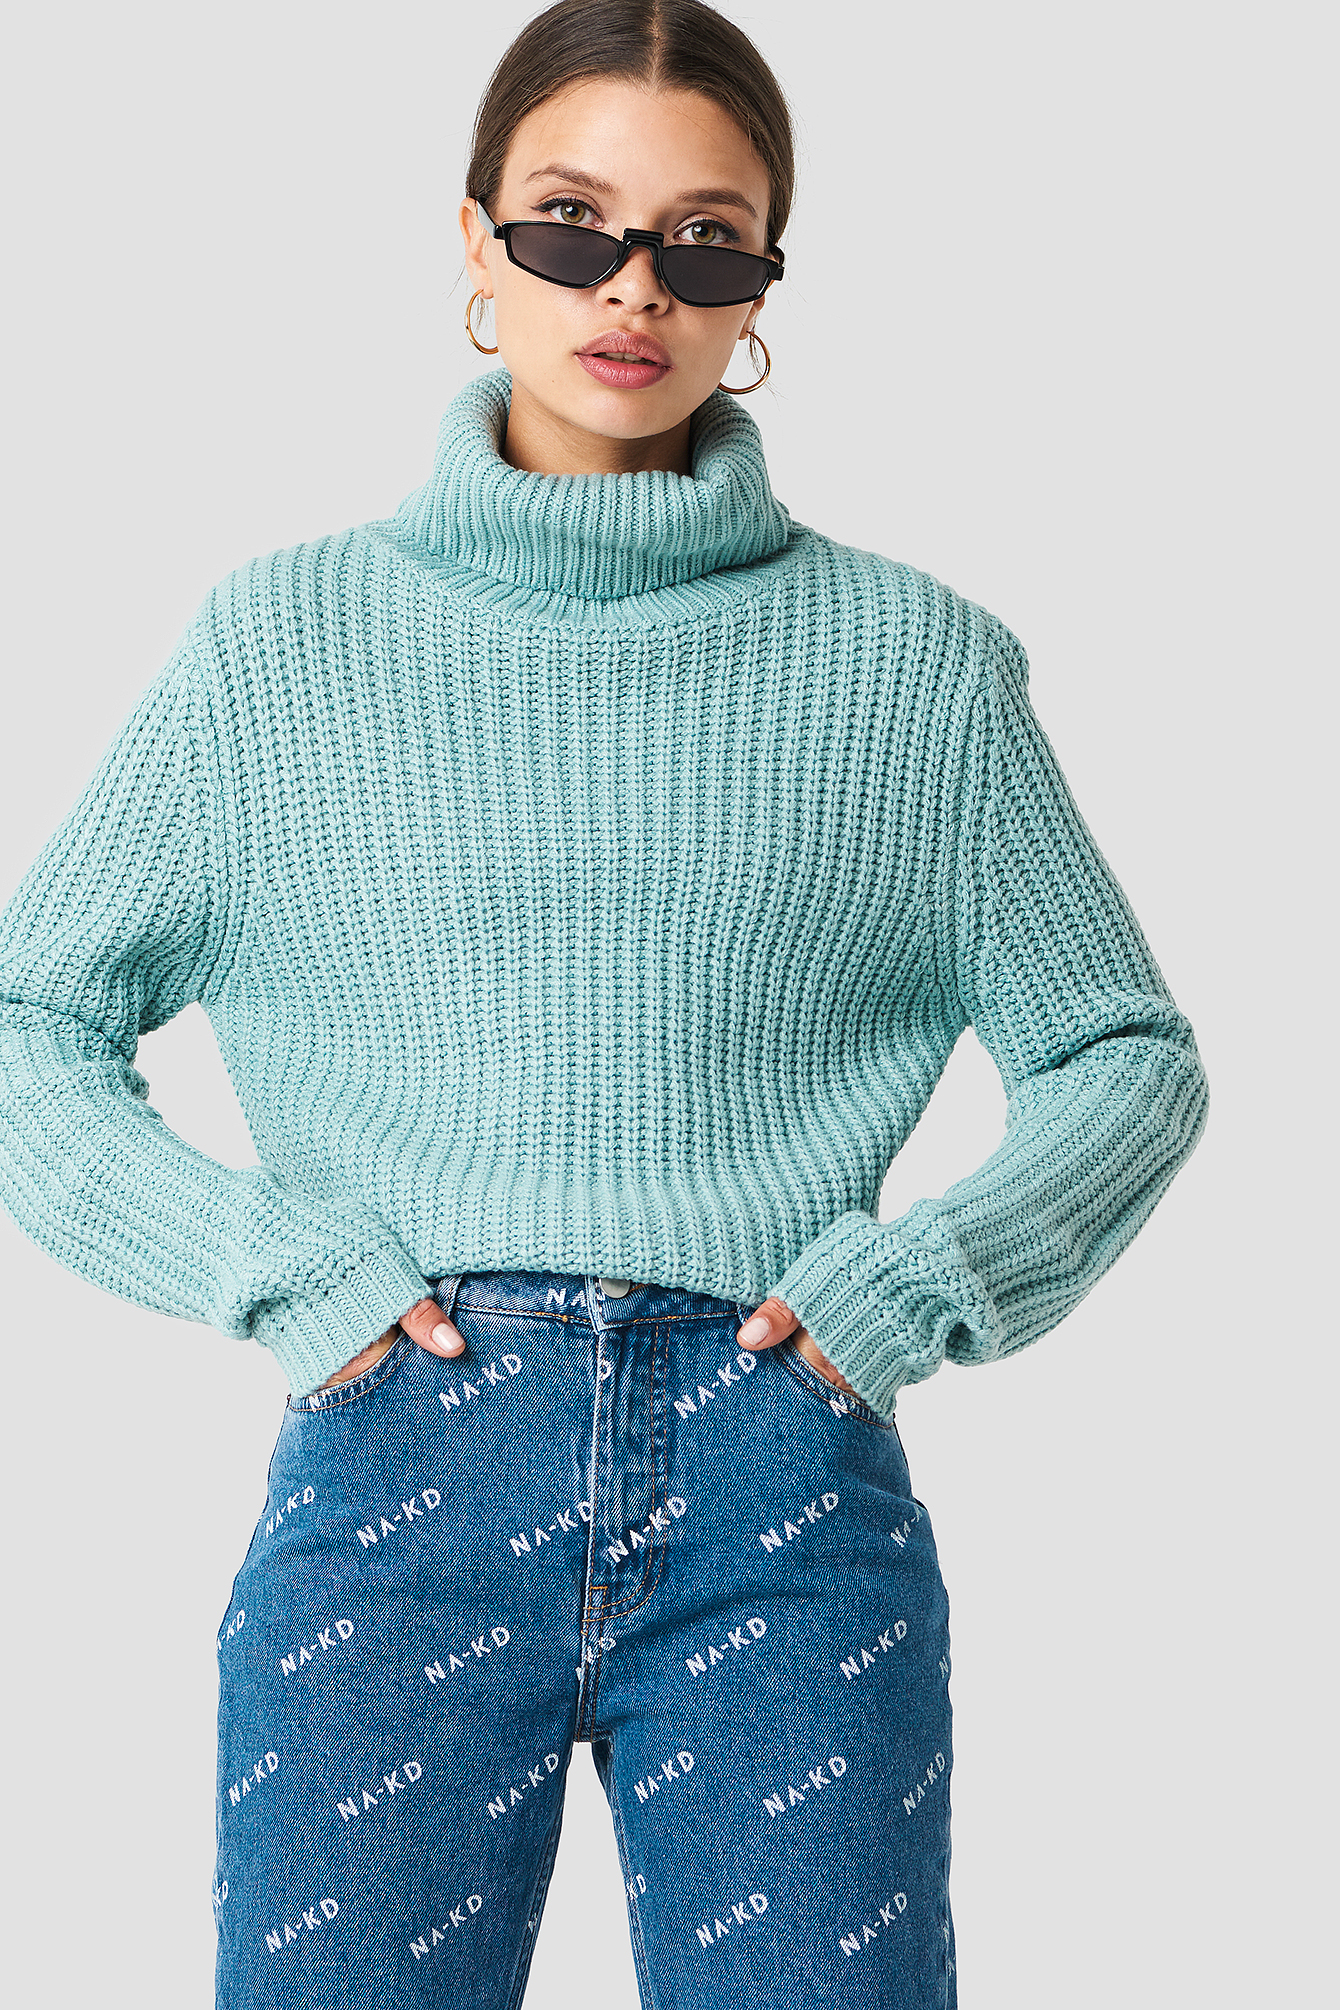 rut&circle -  Tinelle rollneck knit - Turquoise